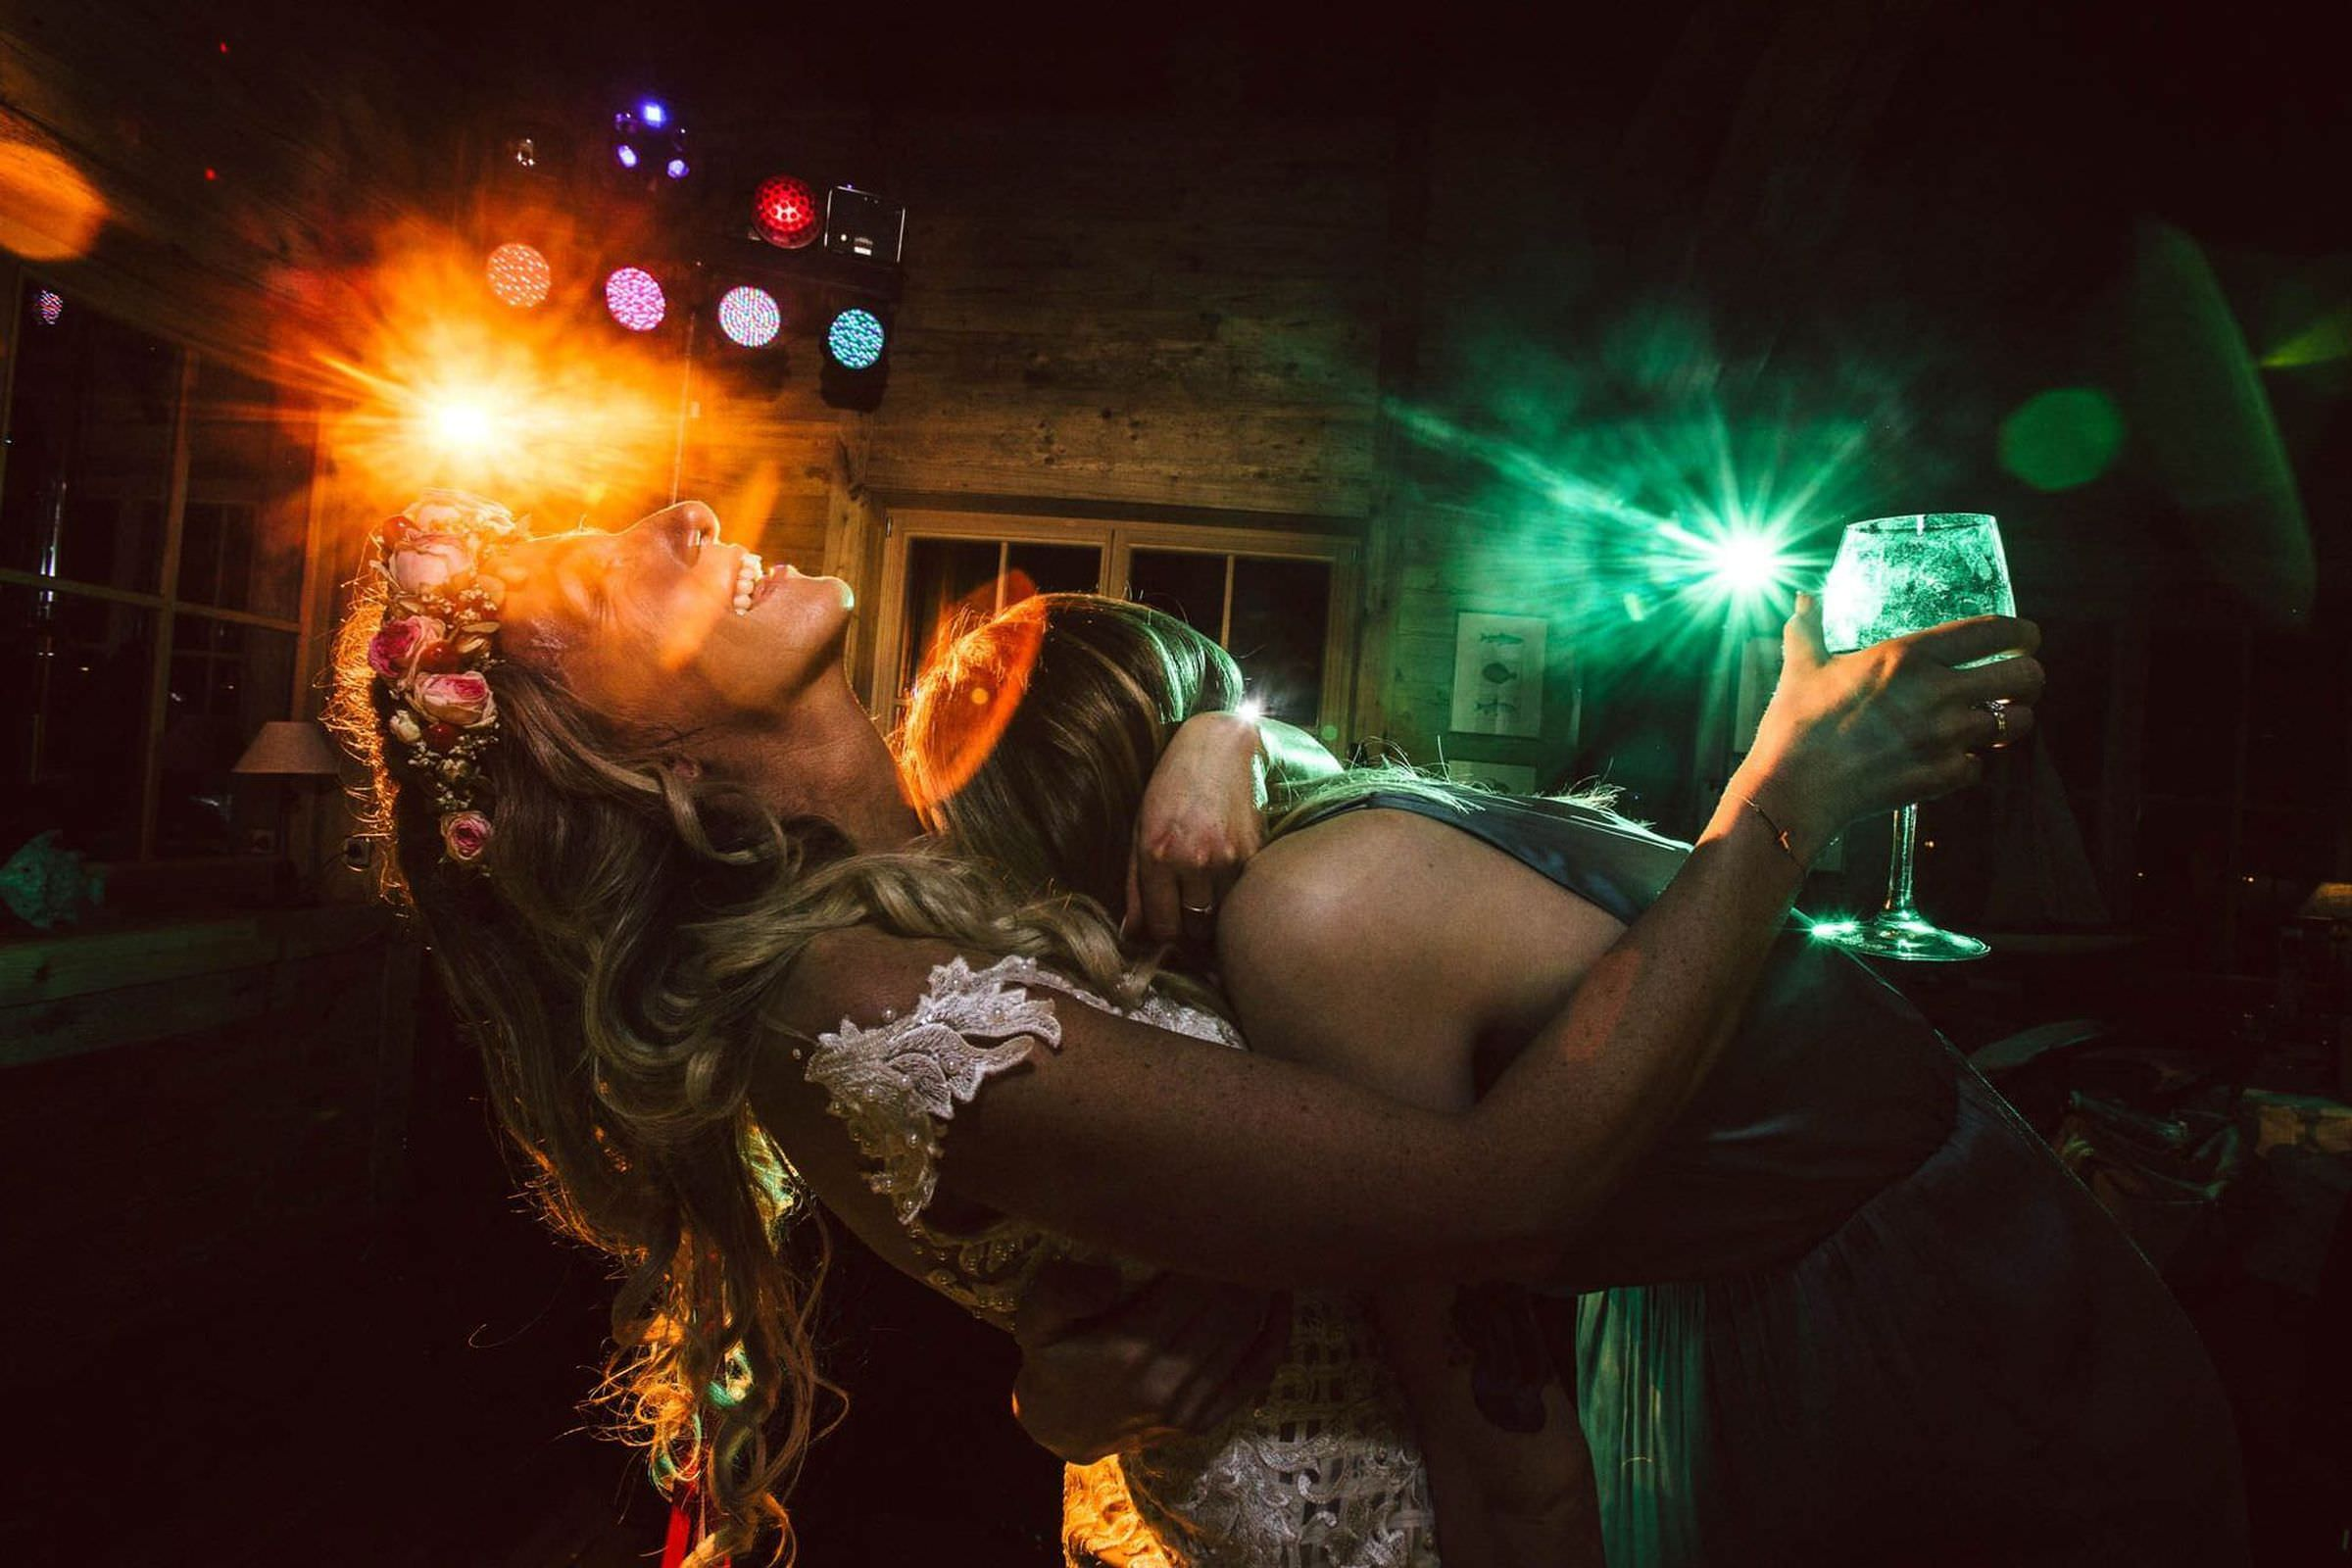 Fun shot of wedding guest dancing with bride by FineArt Weddings Photography from Germany